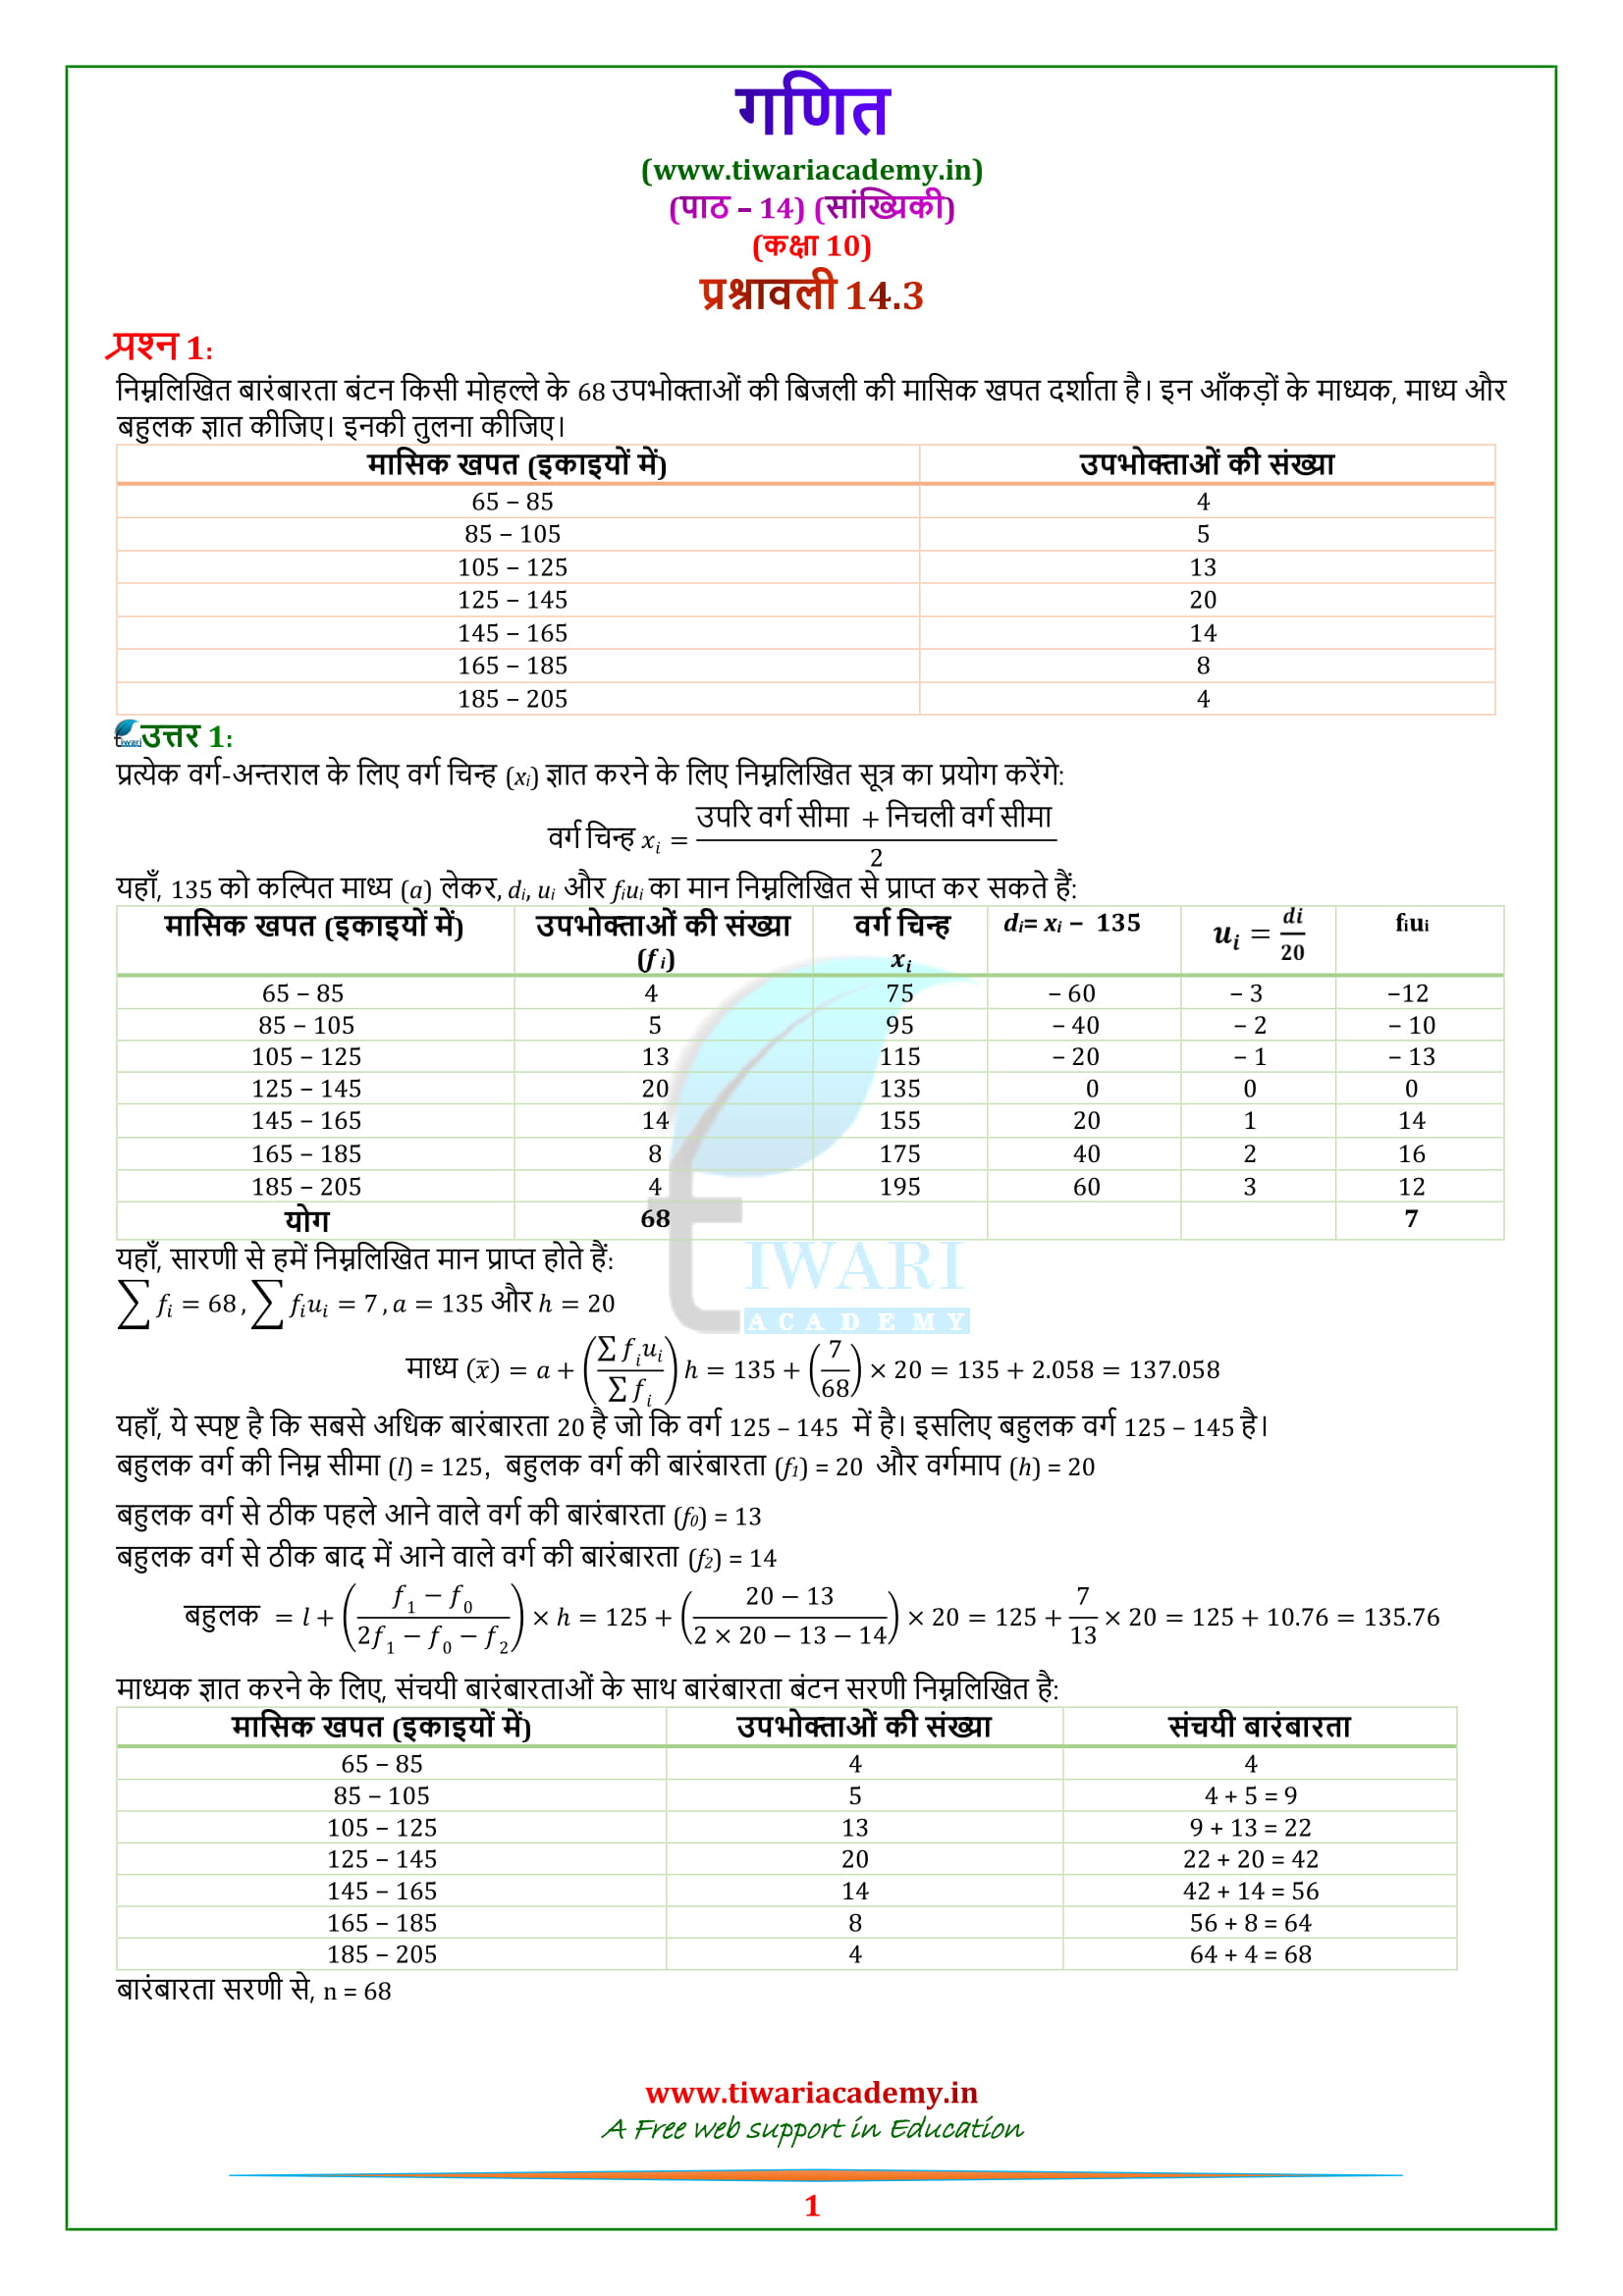 Class 10 Maths Exercise 14.3 Solutions in hindi medium